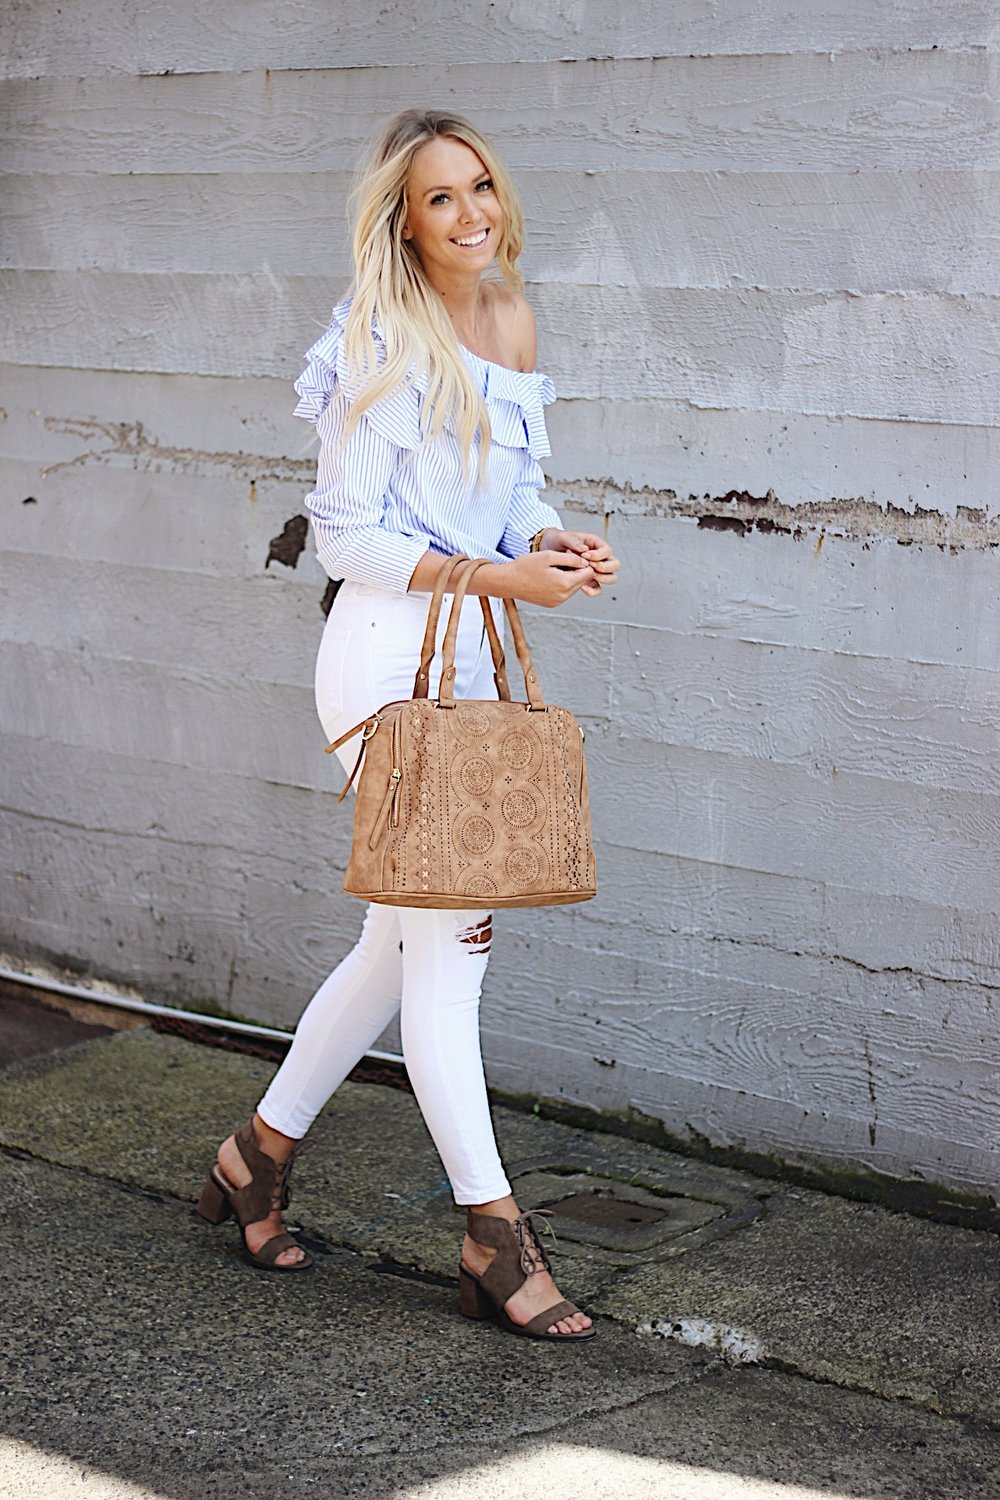 SheIn top, Free People bag, Sole Society shoes, Topshop denim